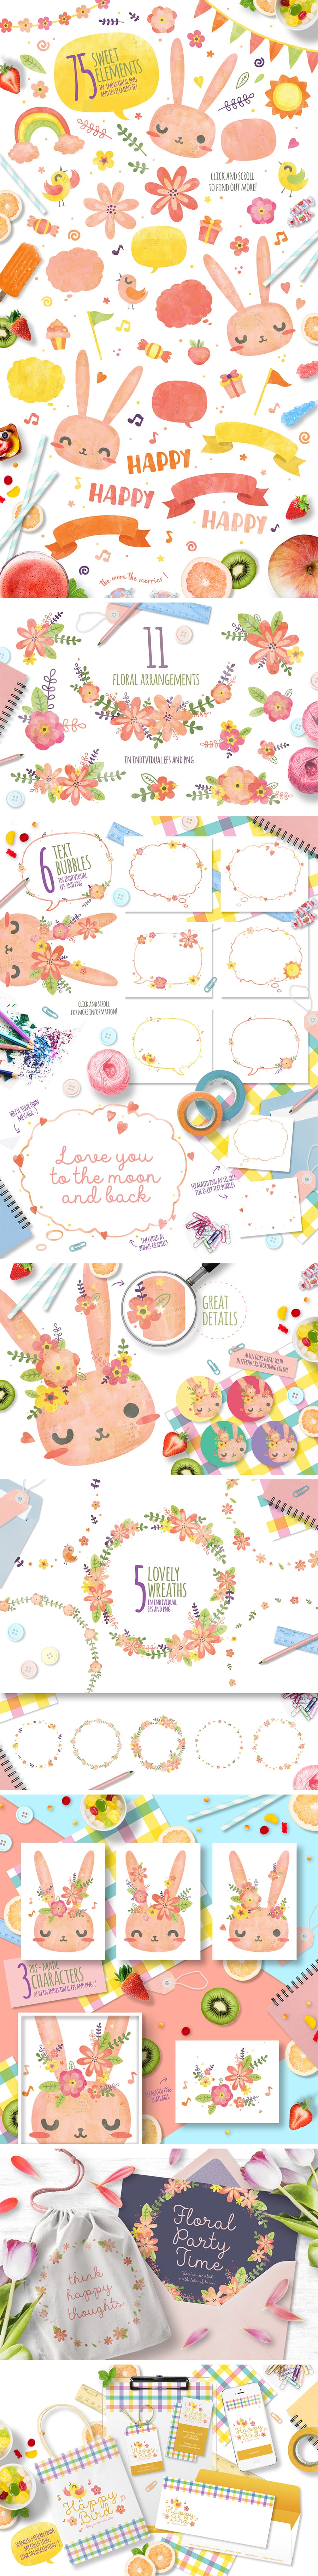 103 Sweet Elements Bundle: Think Happy Thoughts [Easter edition] - Full Image 1